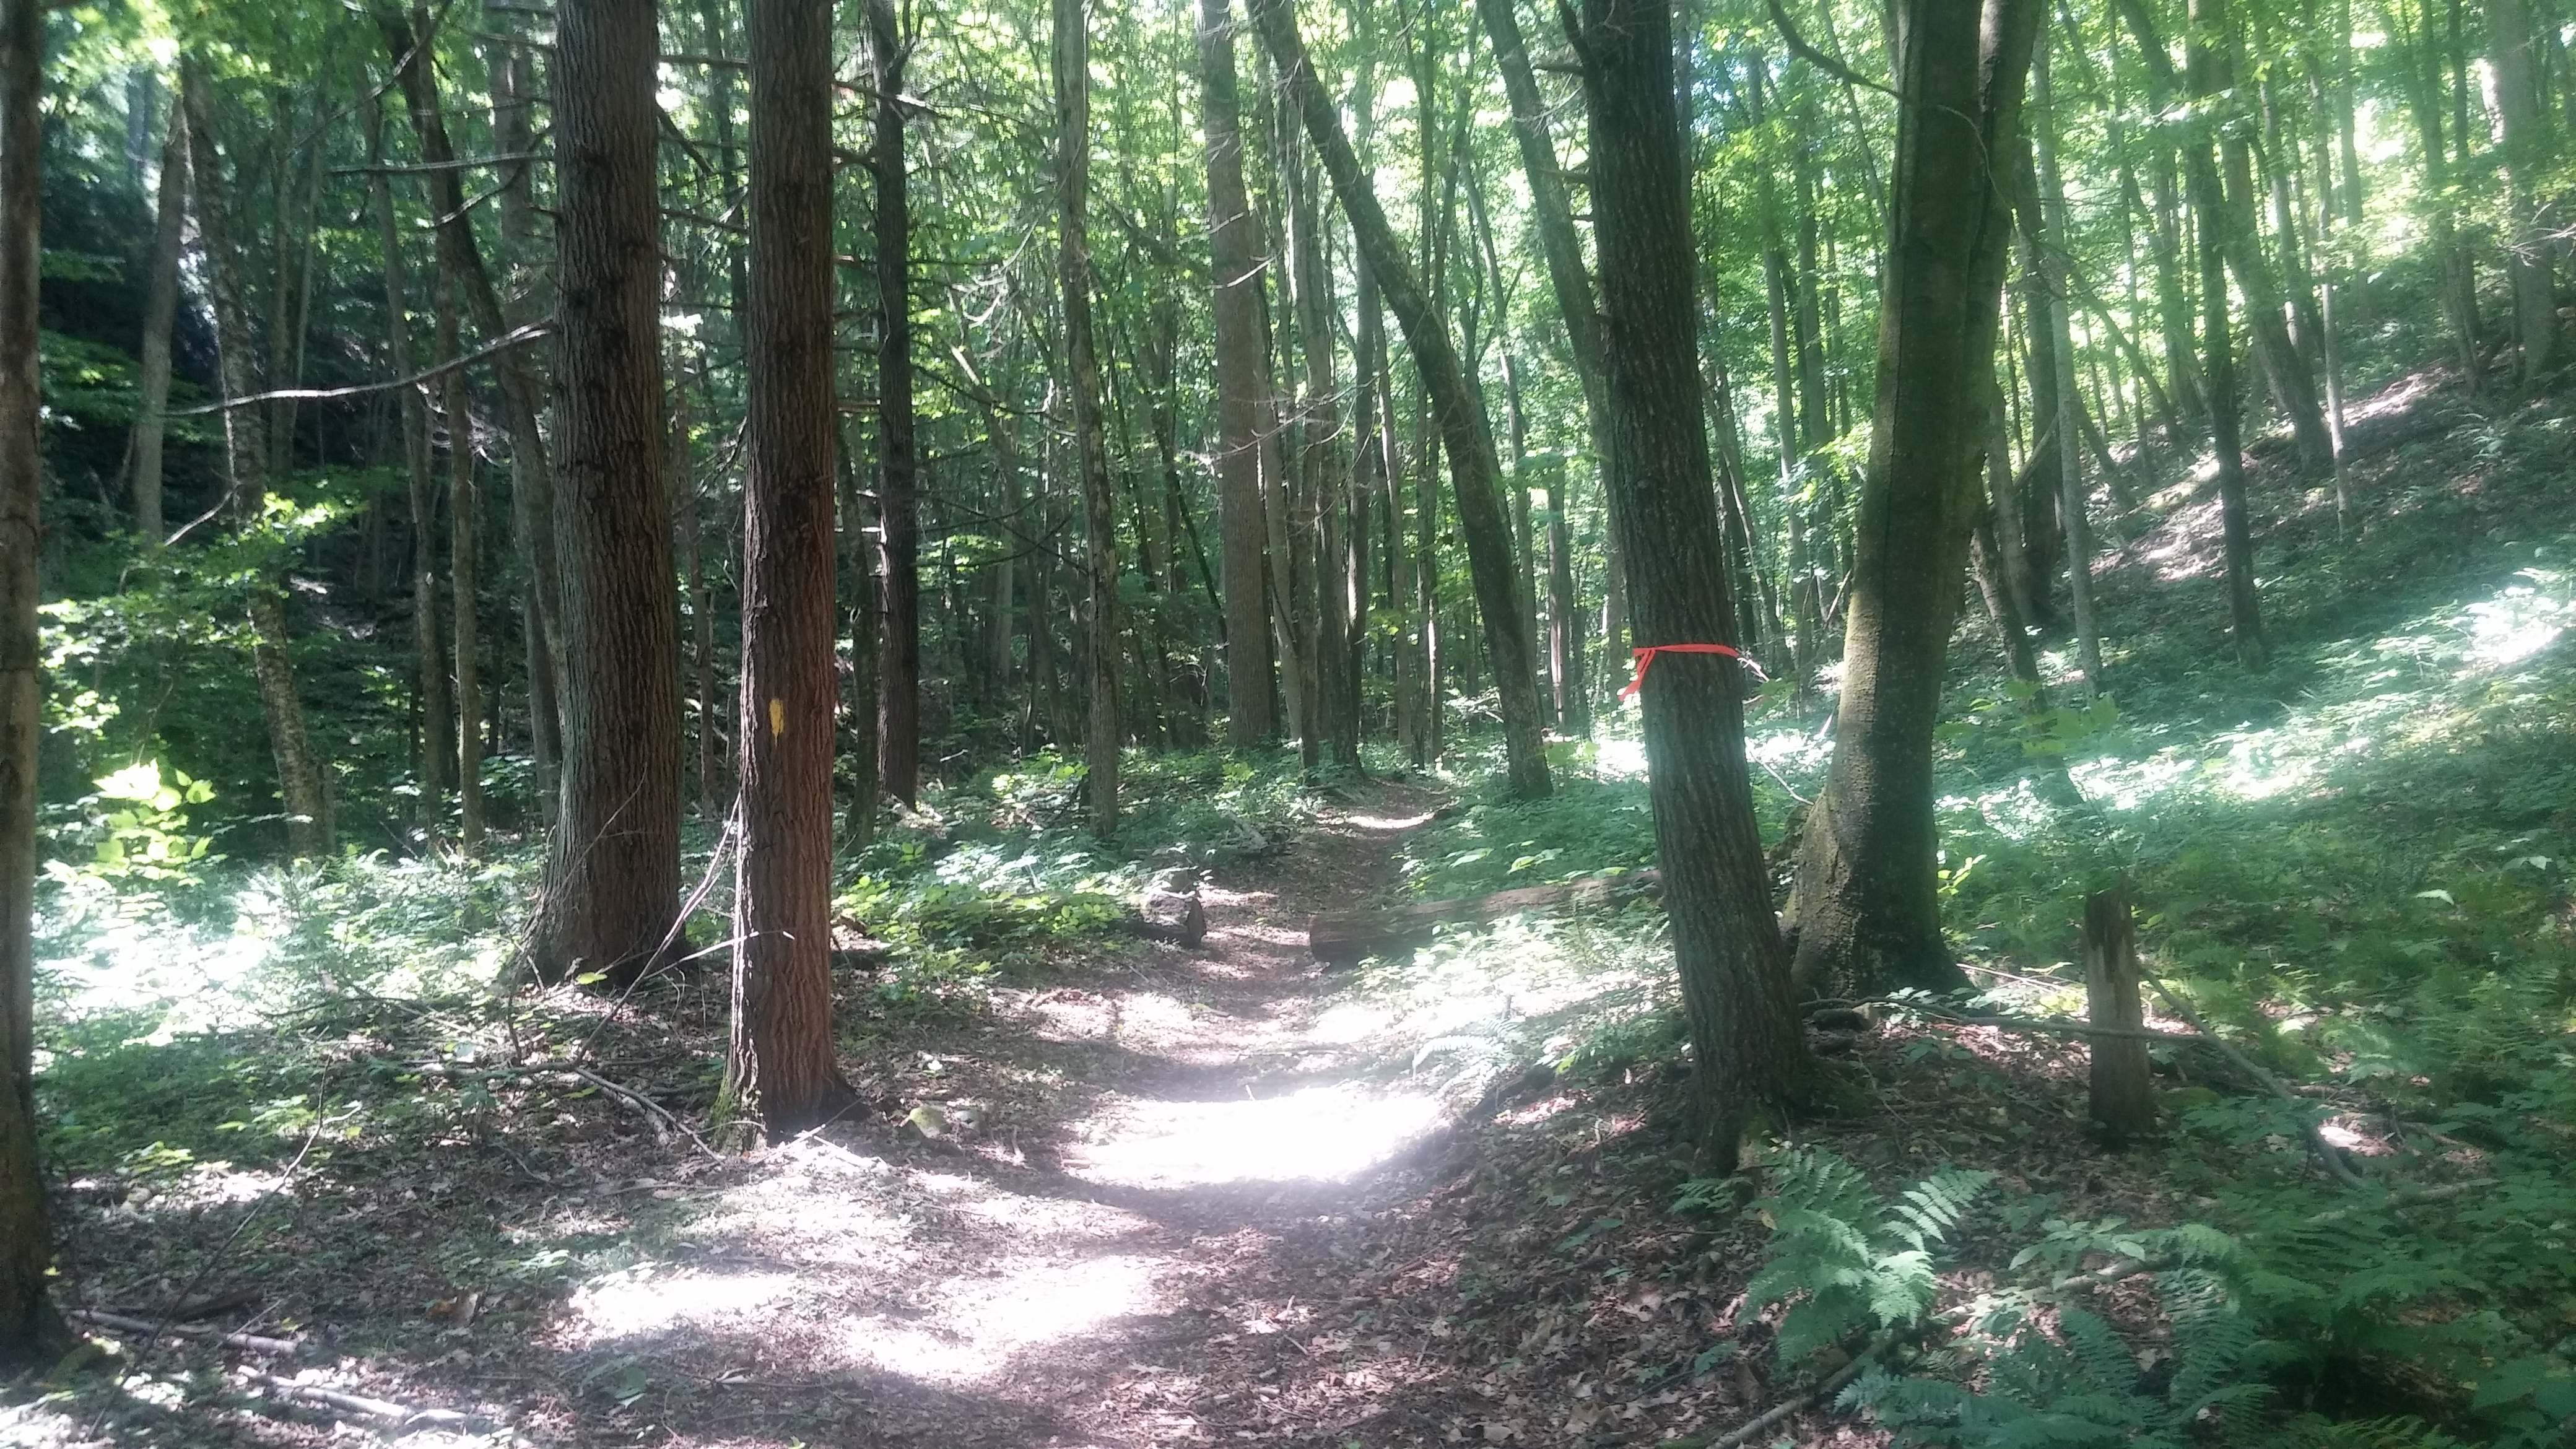 One of the less technical sections of trail.